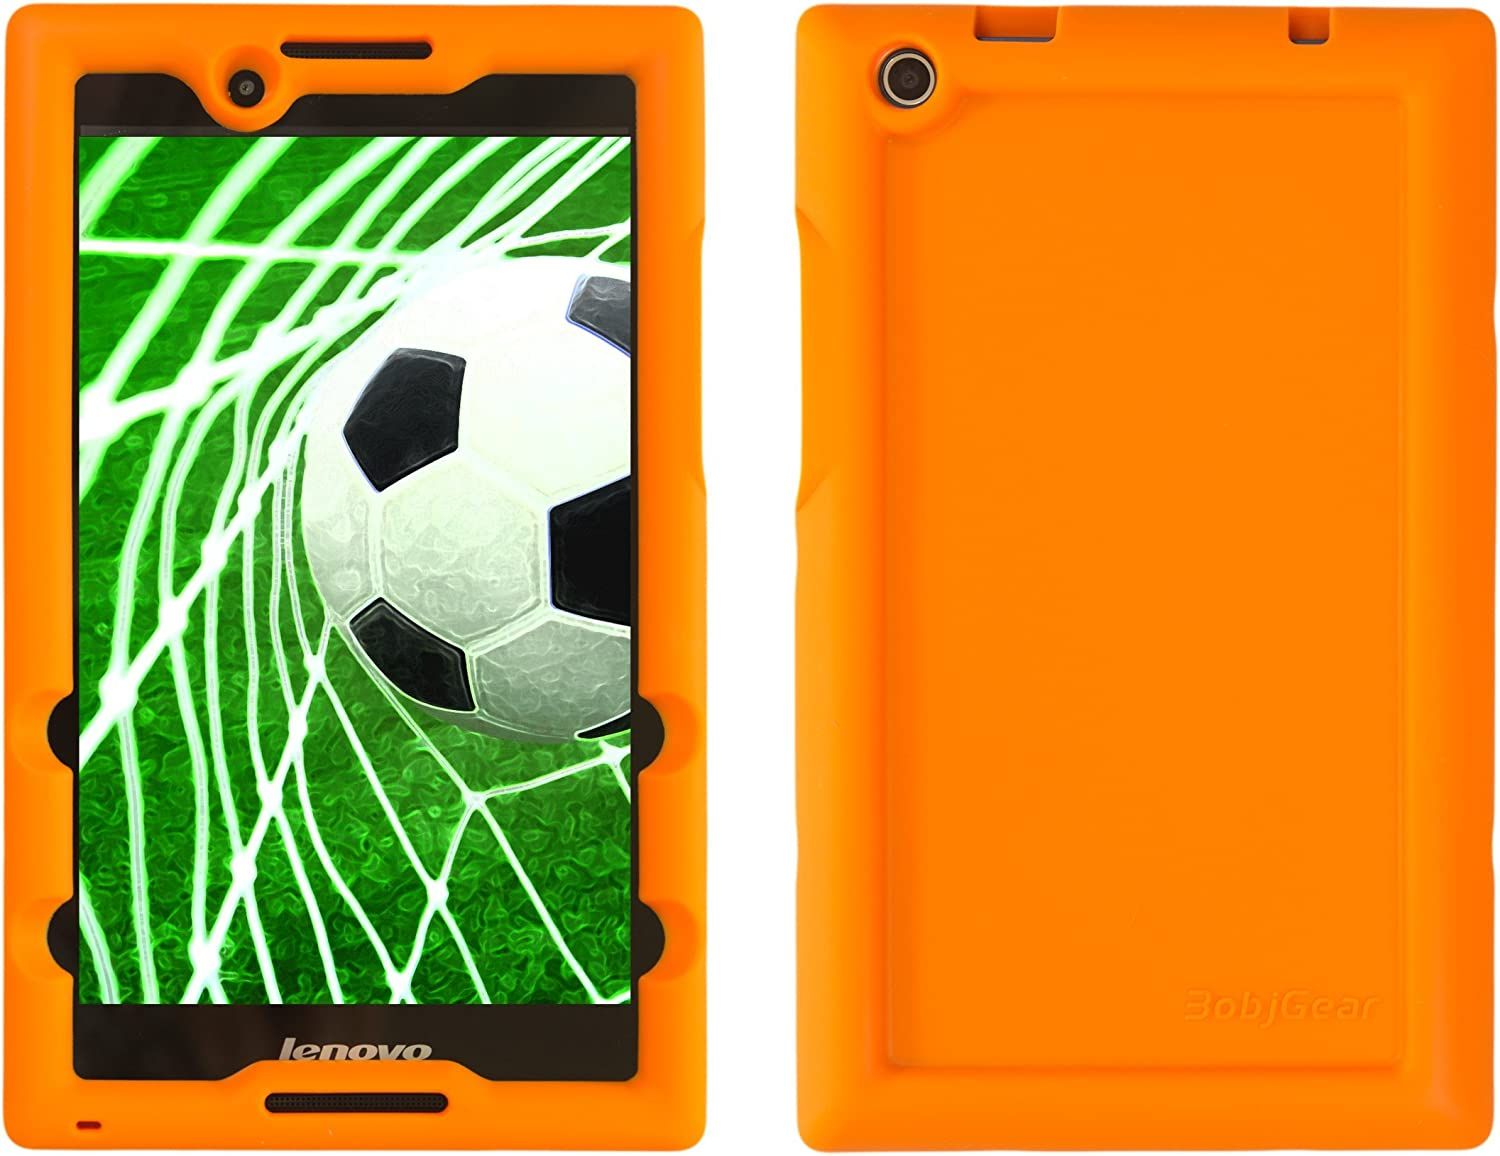 Bobj Rugged Case for Lenovo Tab 2 A8-50, A8-50F, Tab 3 TB3-850F, TB3-850M, ZA170001US, ZA170003US – BobjGear Custom Fit - Patented Venting - Sound Amplification - Kid Friendly (Outrageous Orange)